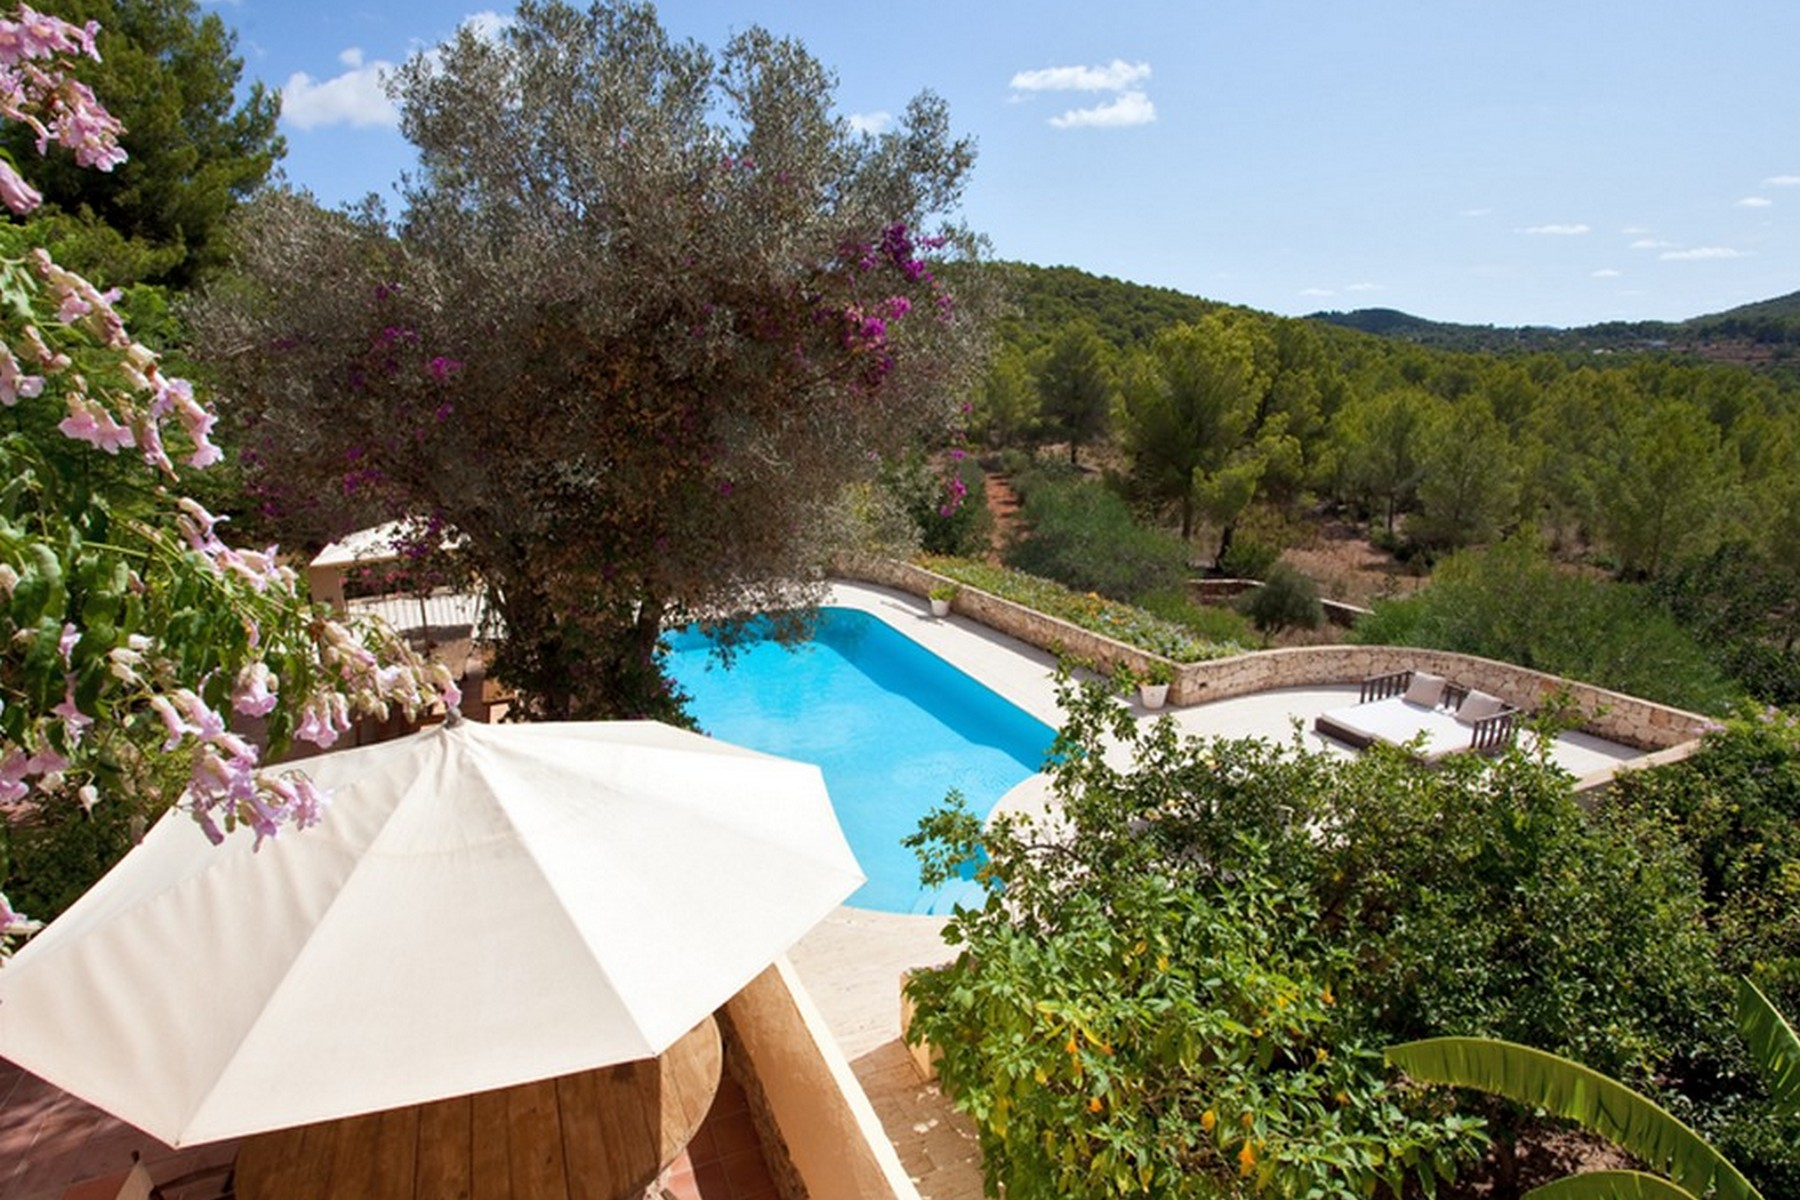 Single Family Home for Sale at Country Finca Estate With Adjacent Staff House Ibiza, Ibiza, 07819 Spain